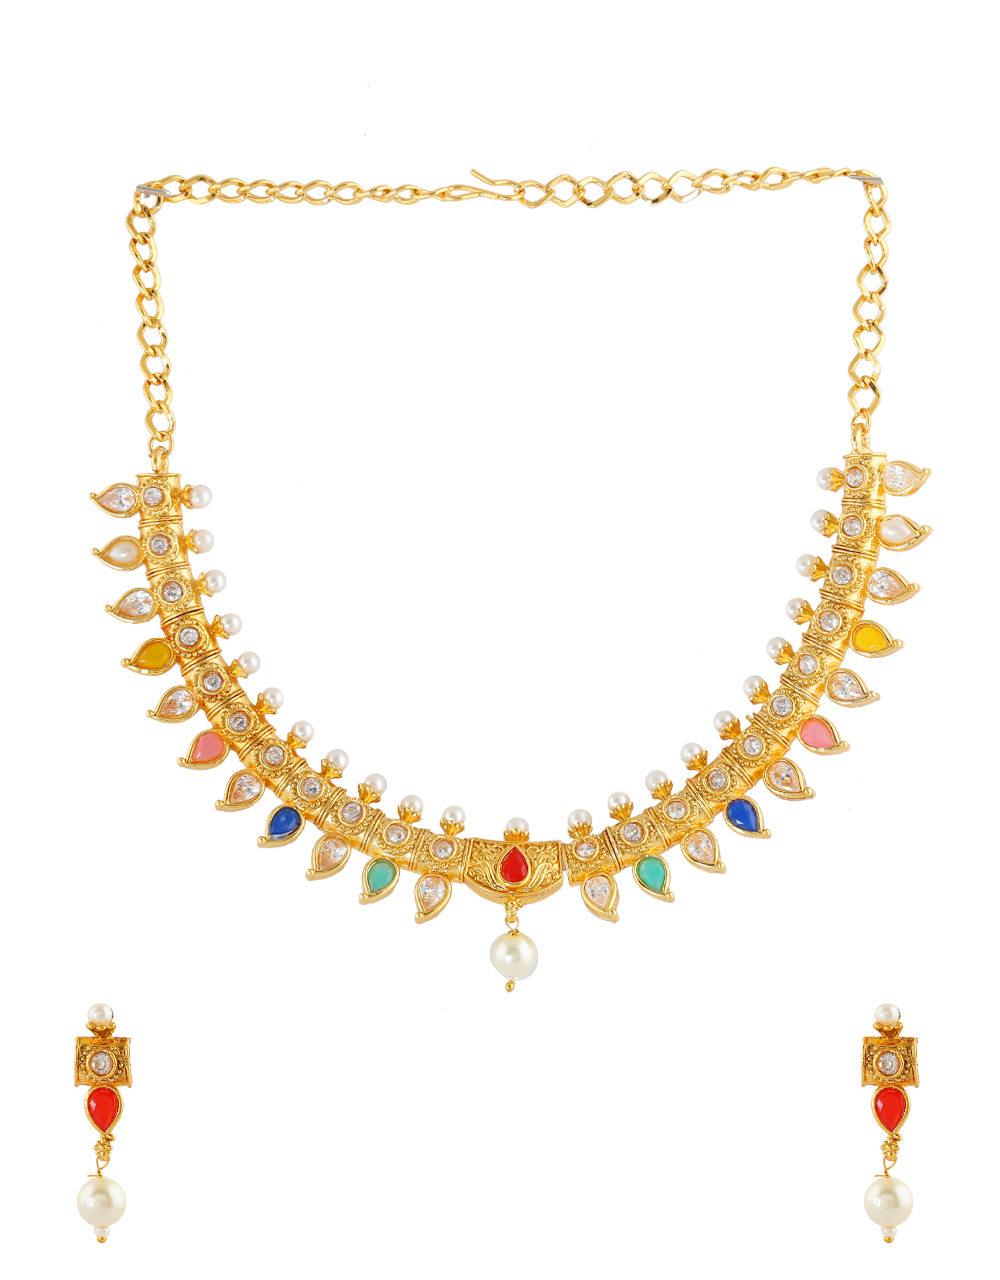 Fancy Gold Finish Multi Colour Necklace Jewellery